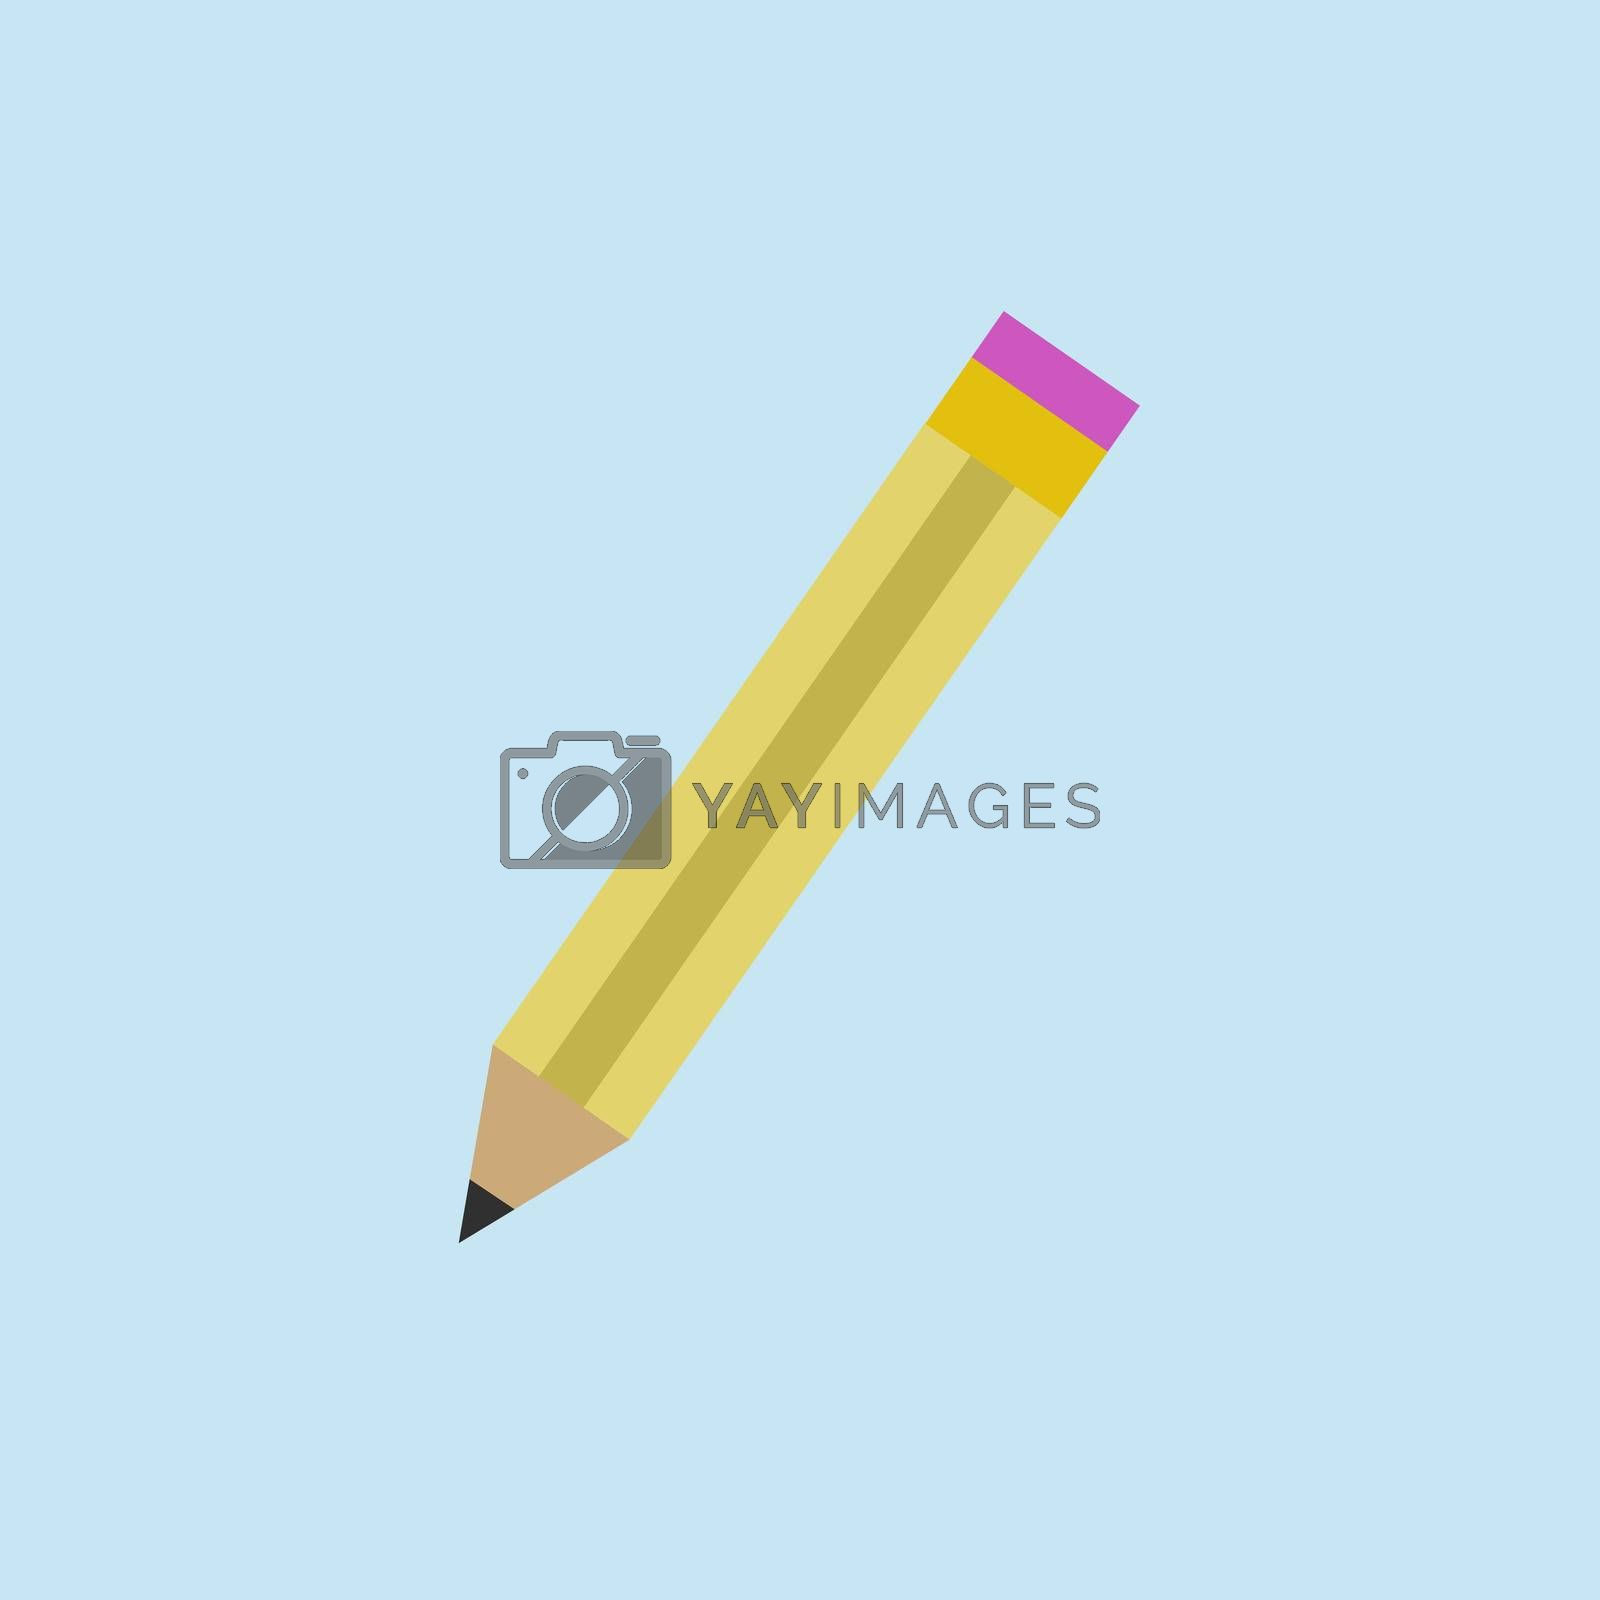 slate wooden pencil in flat style on a light blue background.